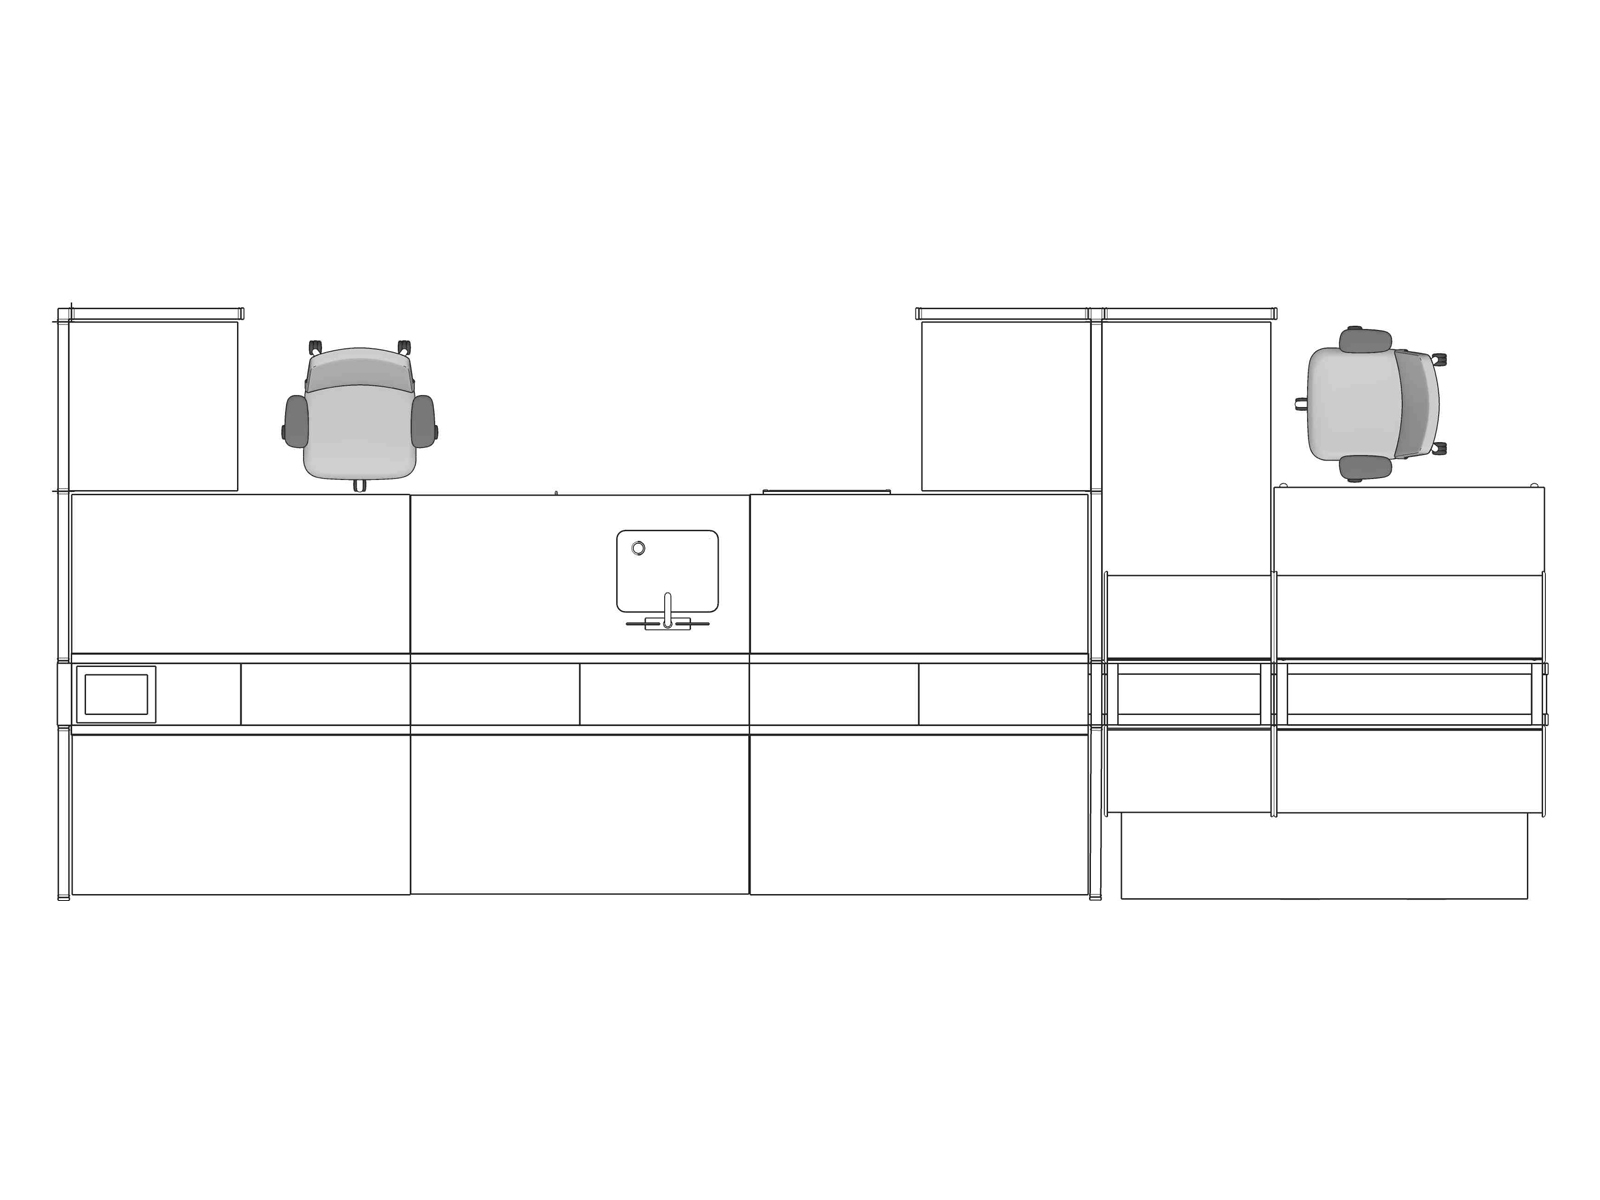 A line drawing viewed from above - Laboratory 003